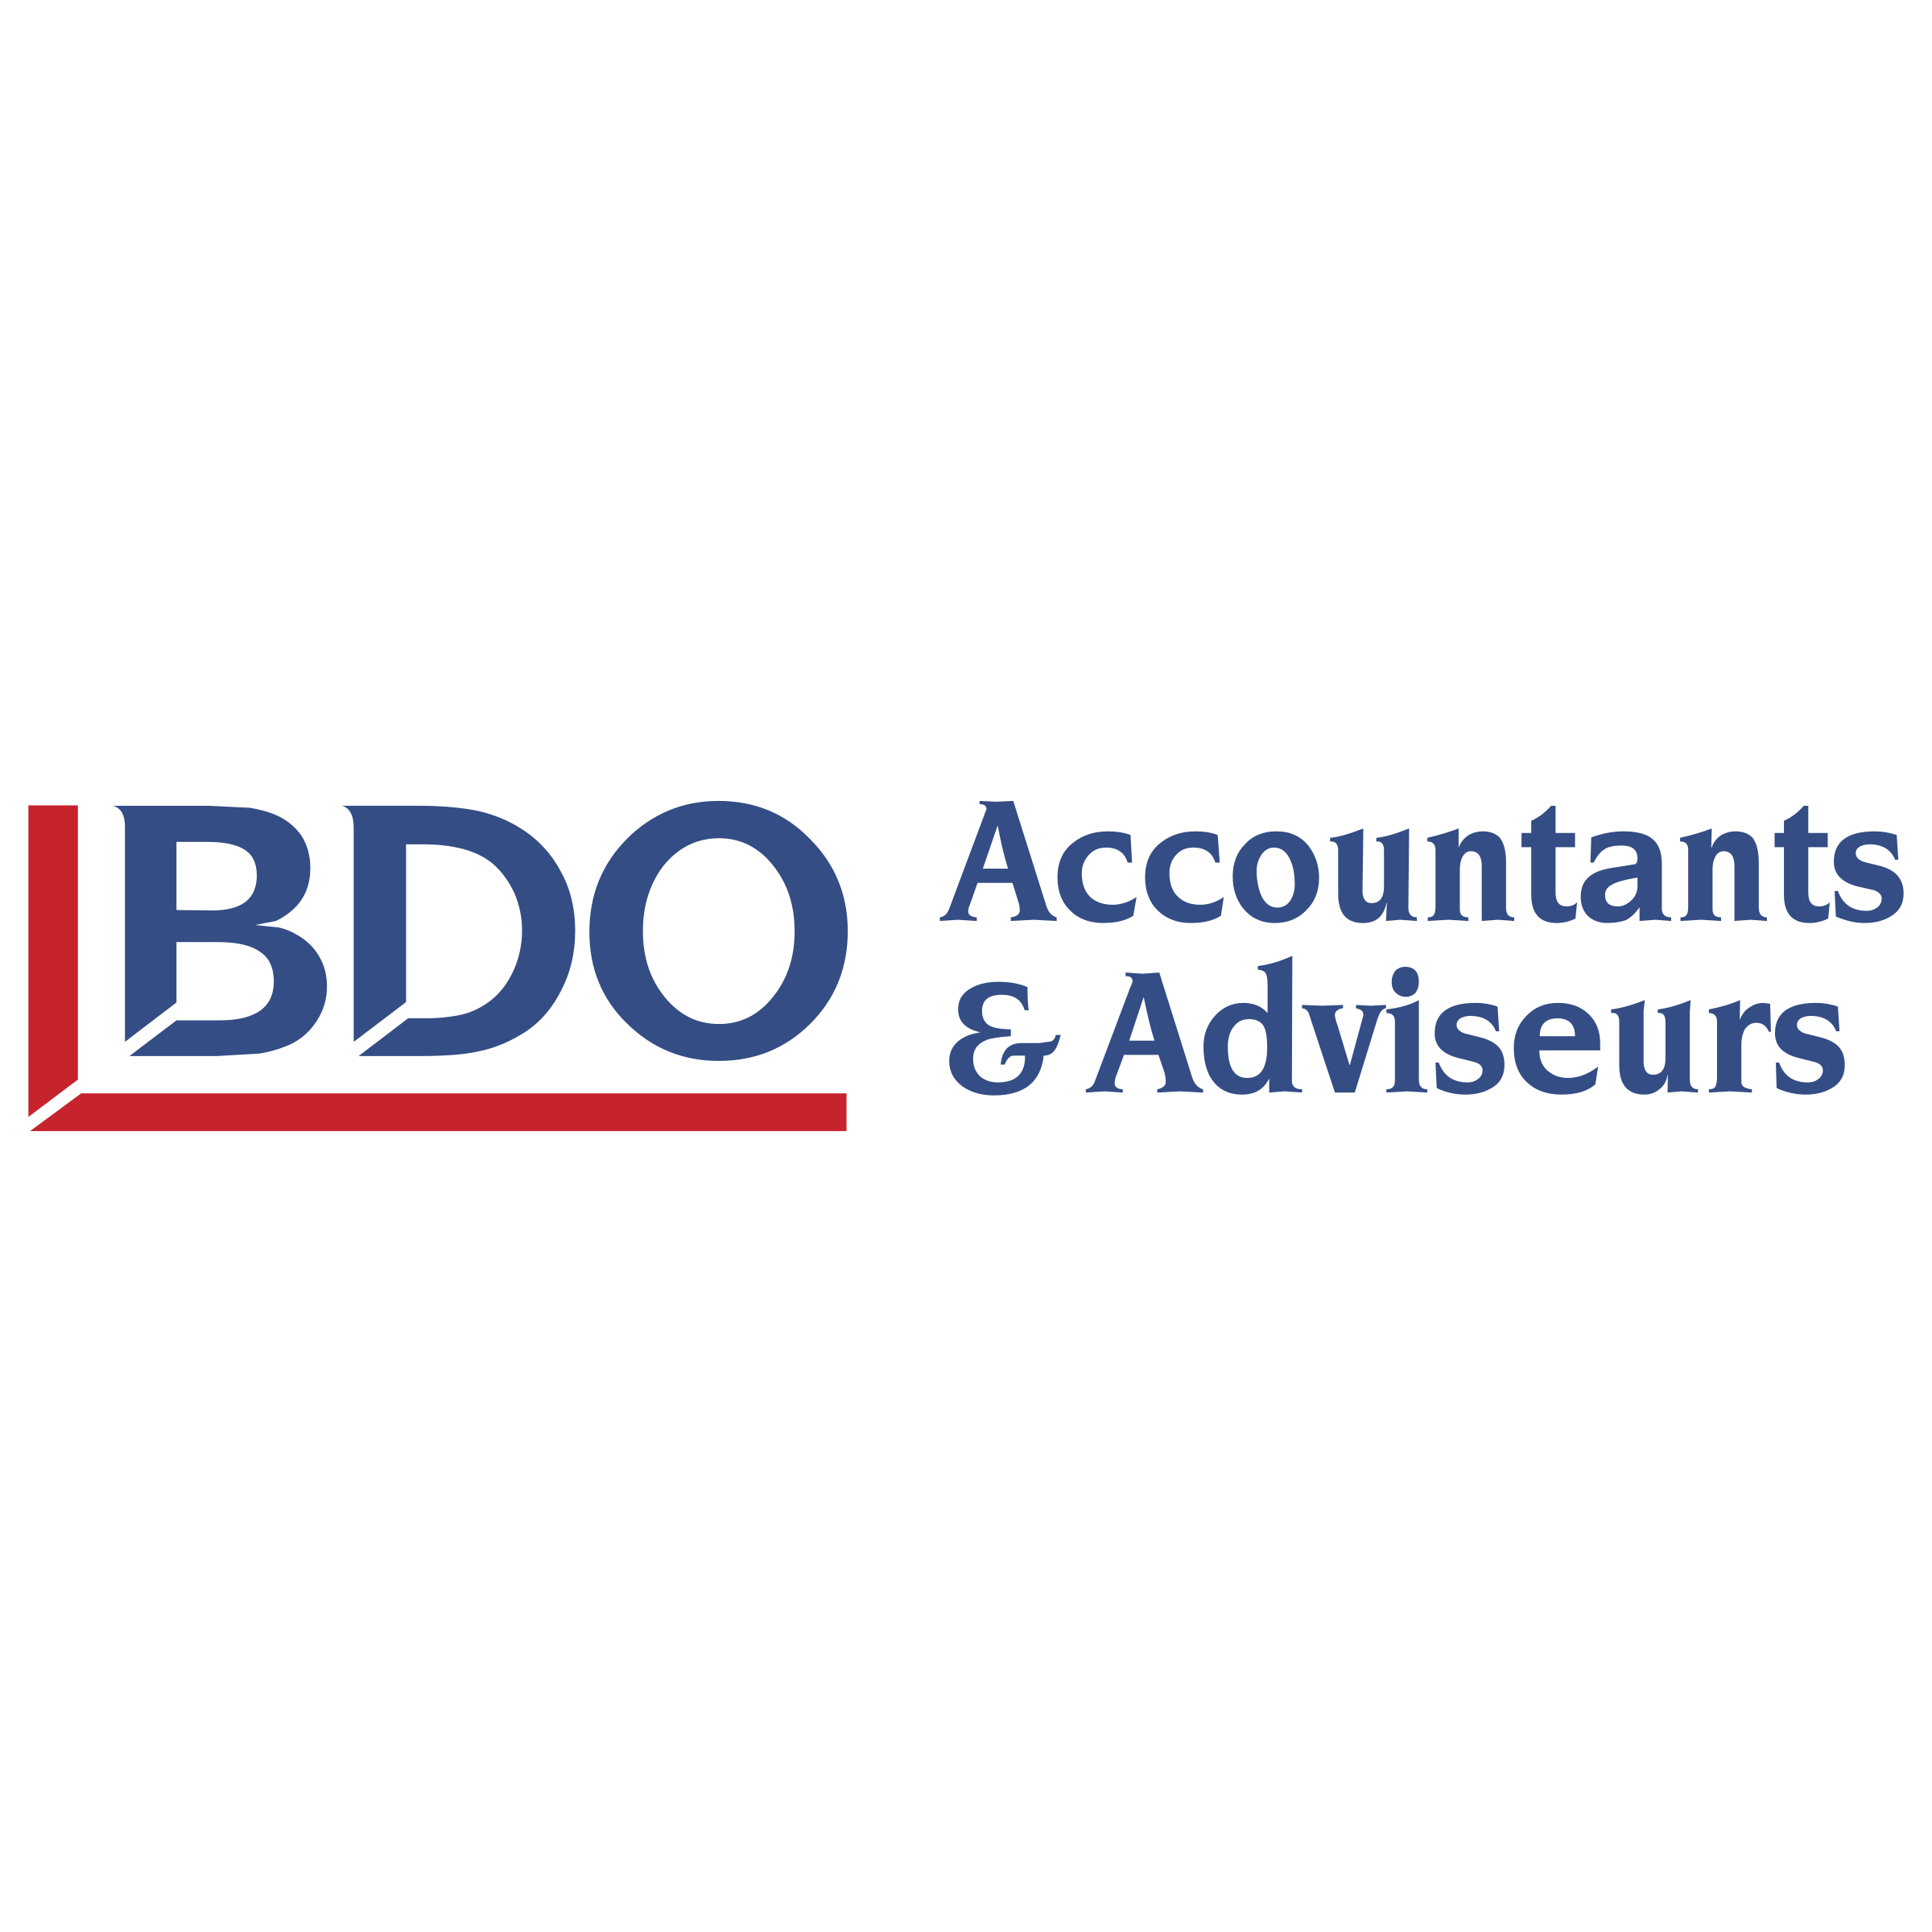 BDO Logo PNG Transparent & SVG Vector.